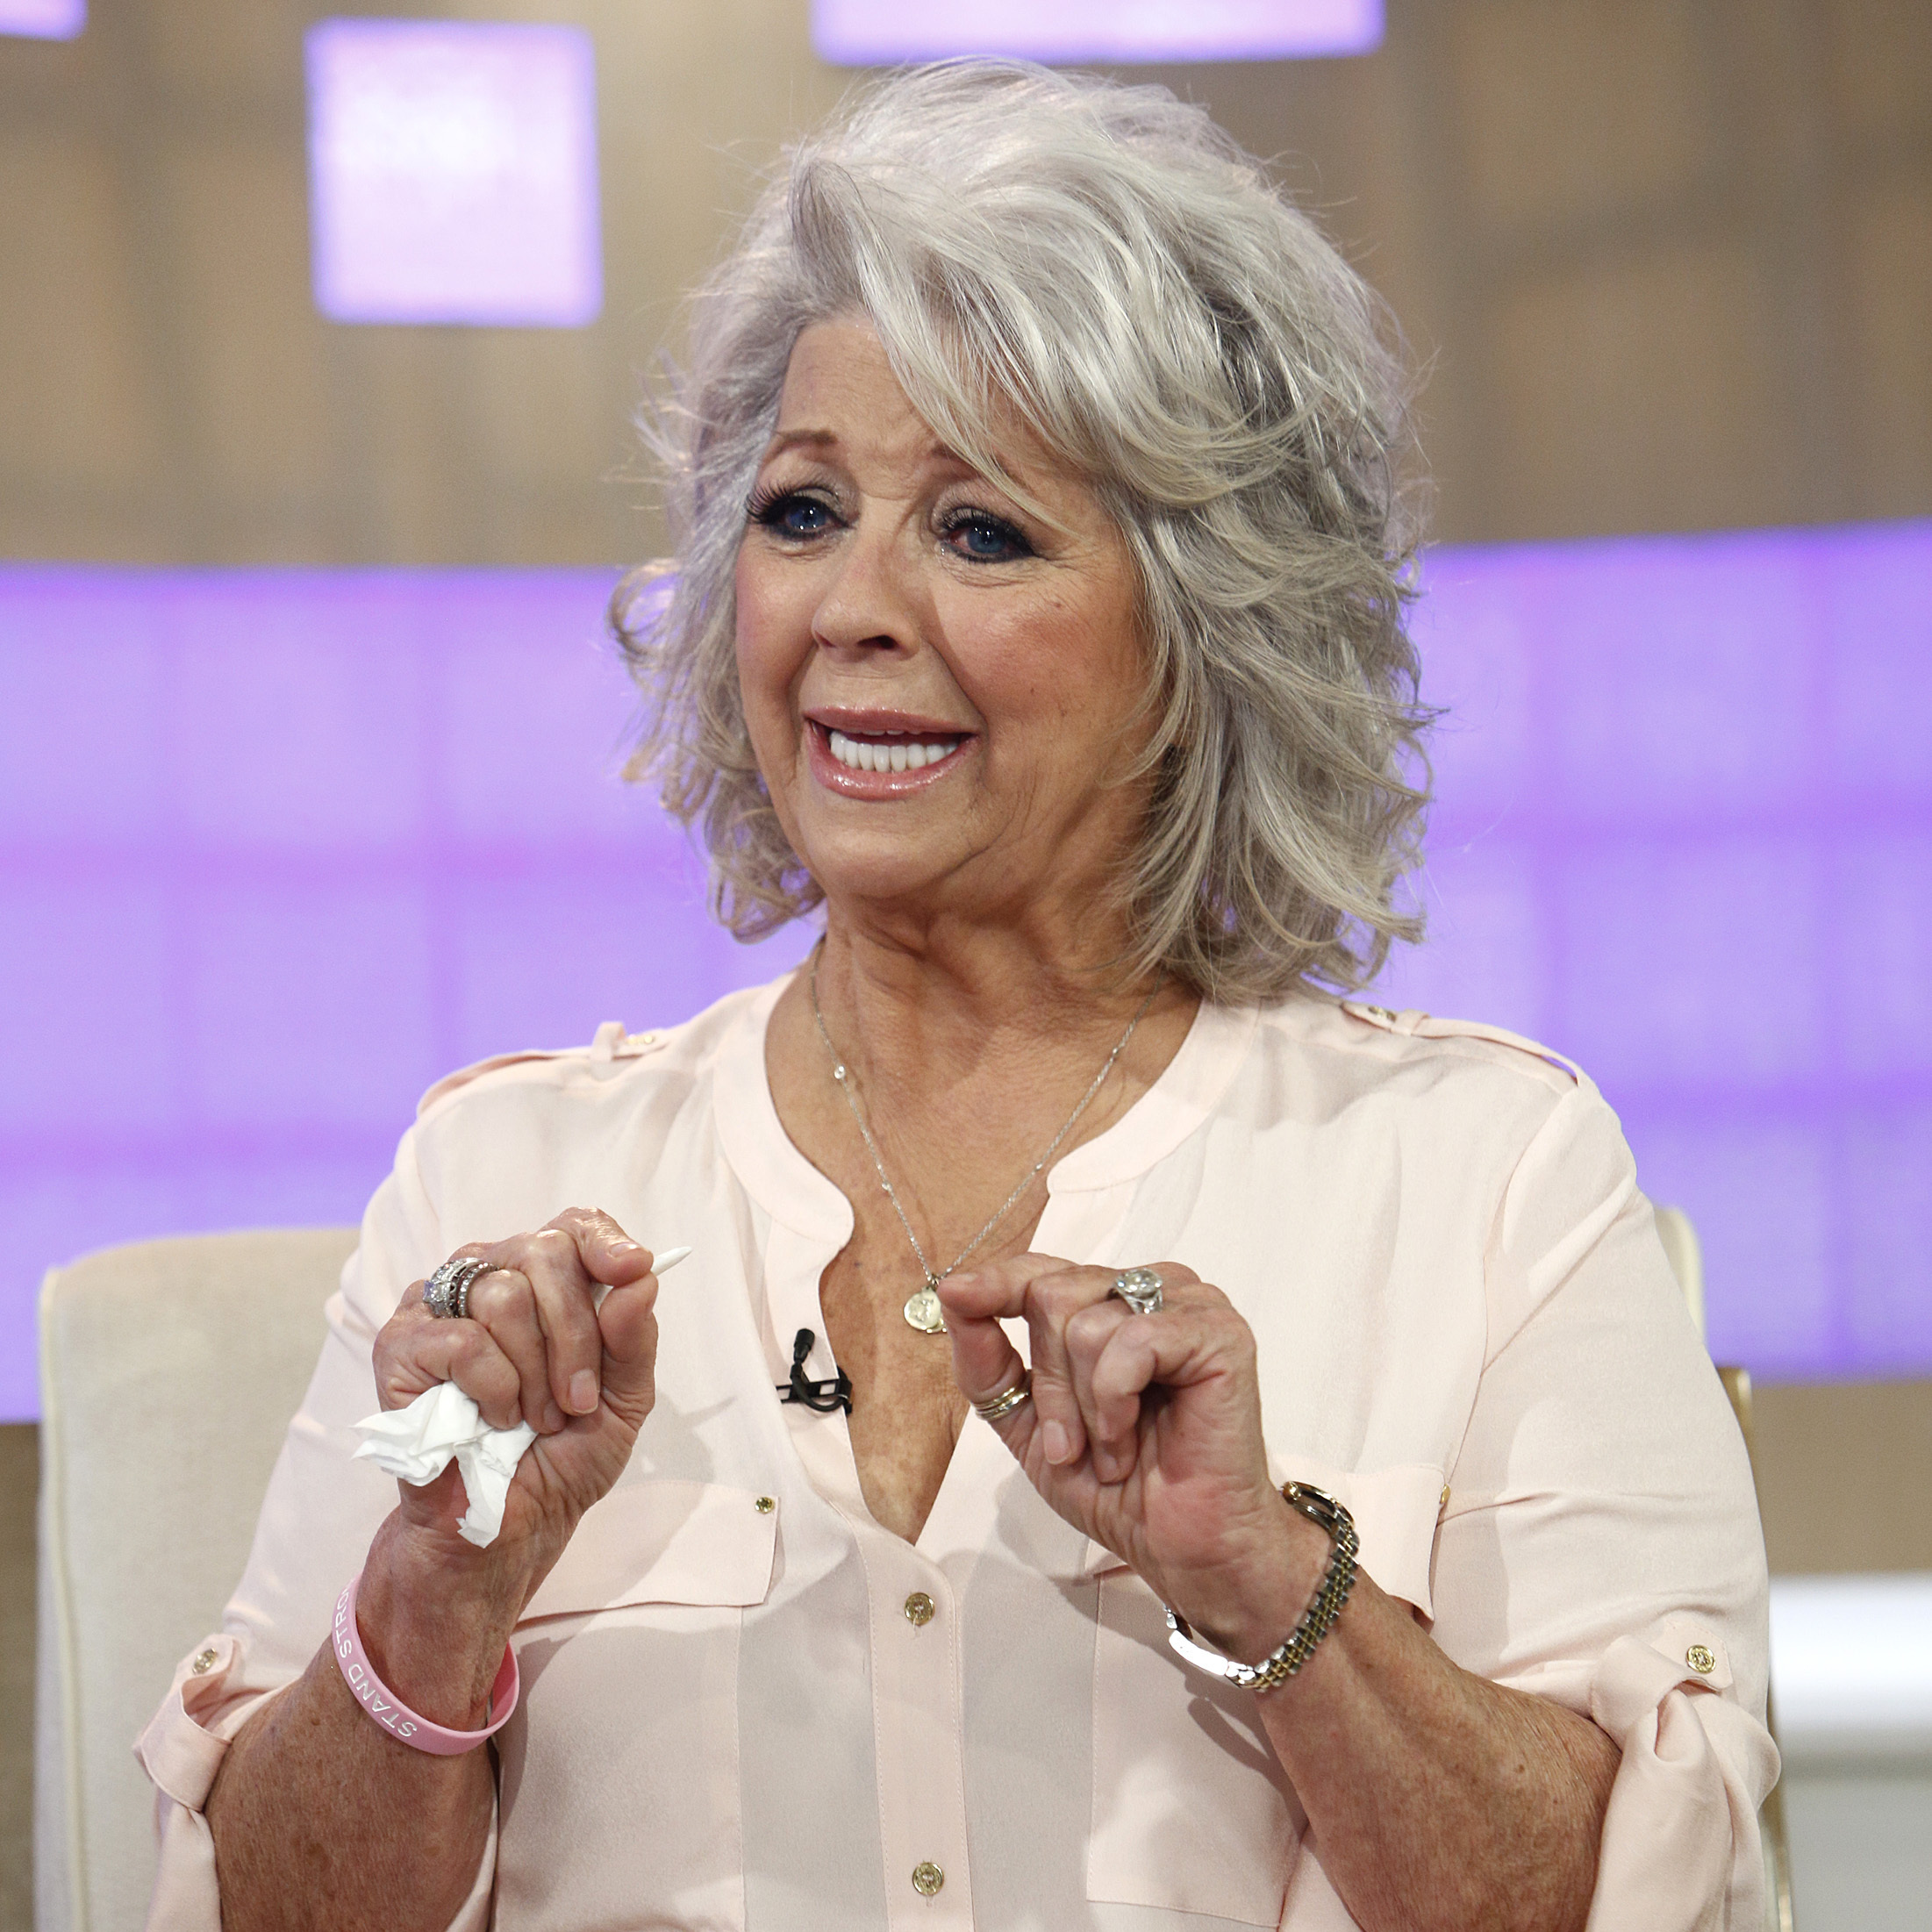 Celebrity chef Paula Deen appears on NBC News' Today show on June 26. During the interview, Deen cried when discussing her admission that she used a racial slur in the past.